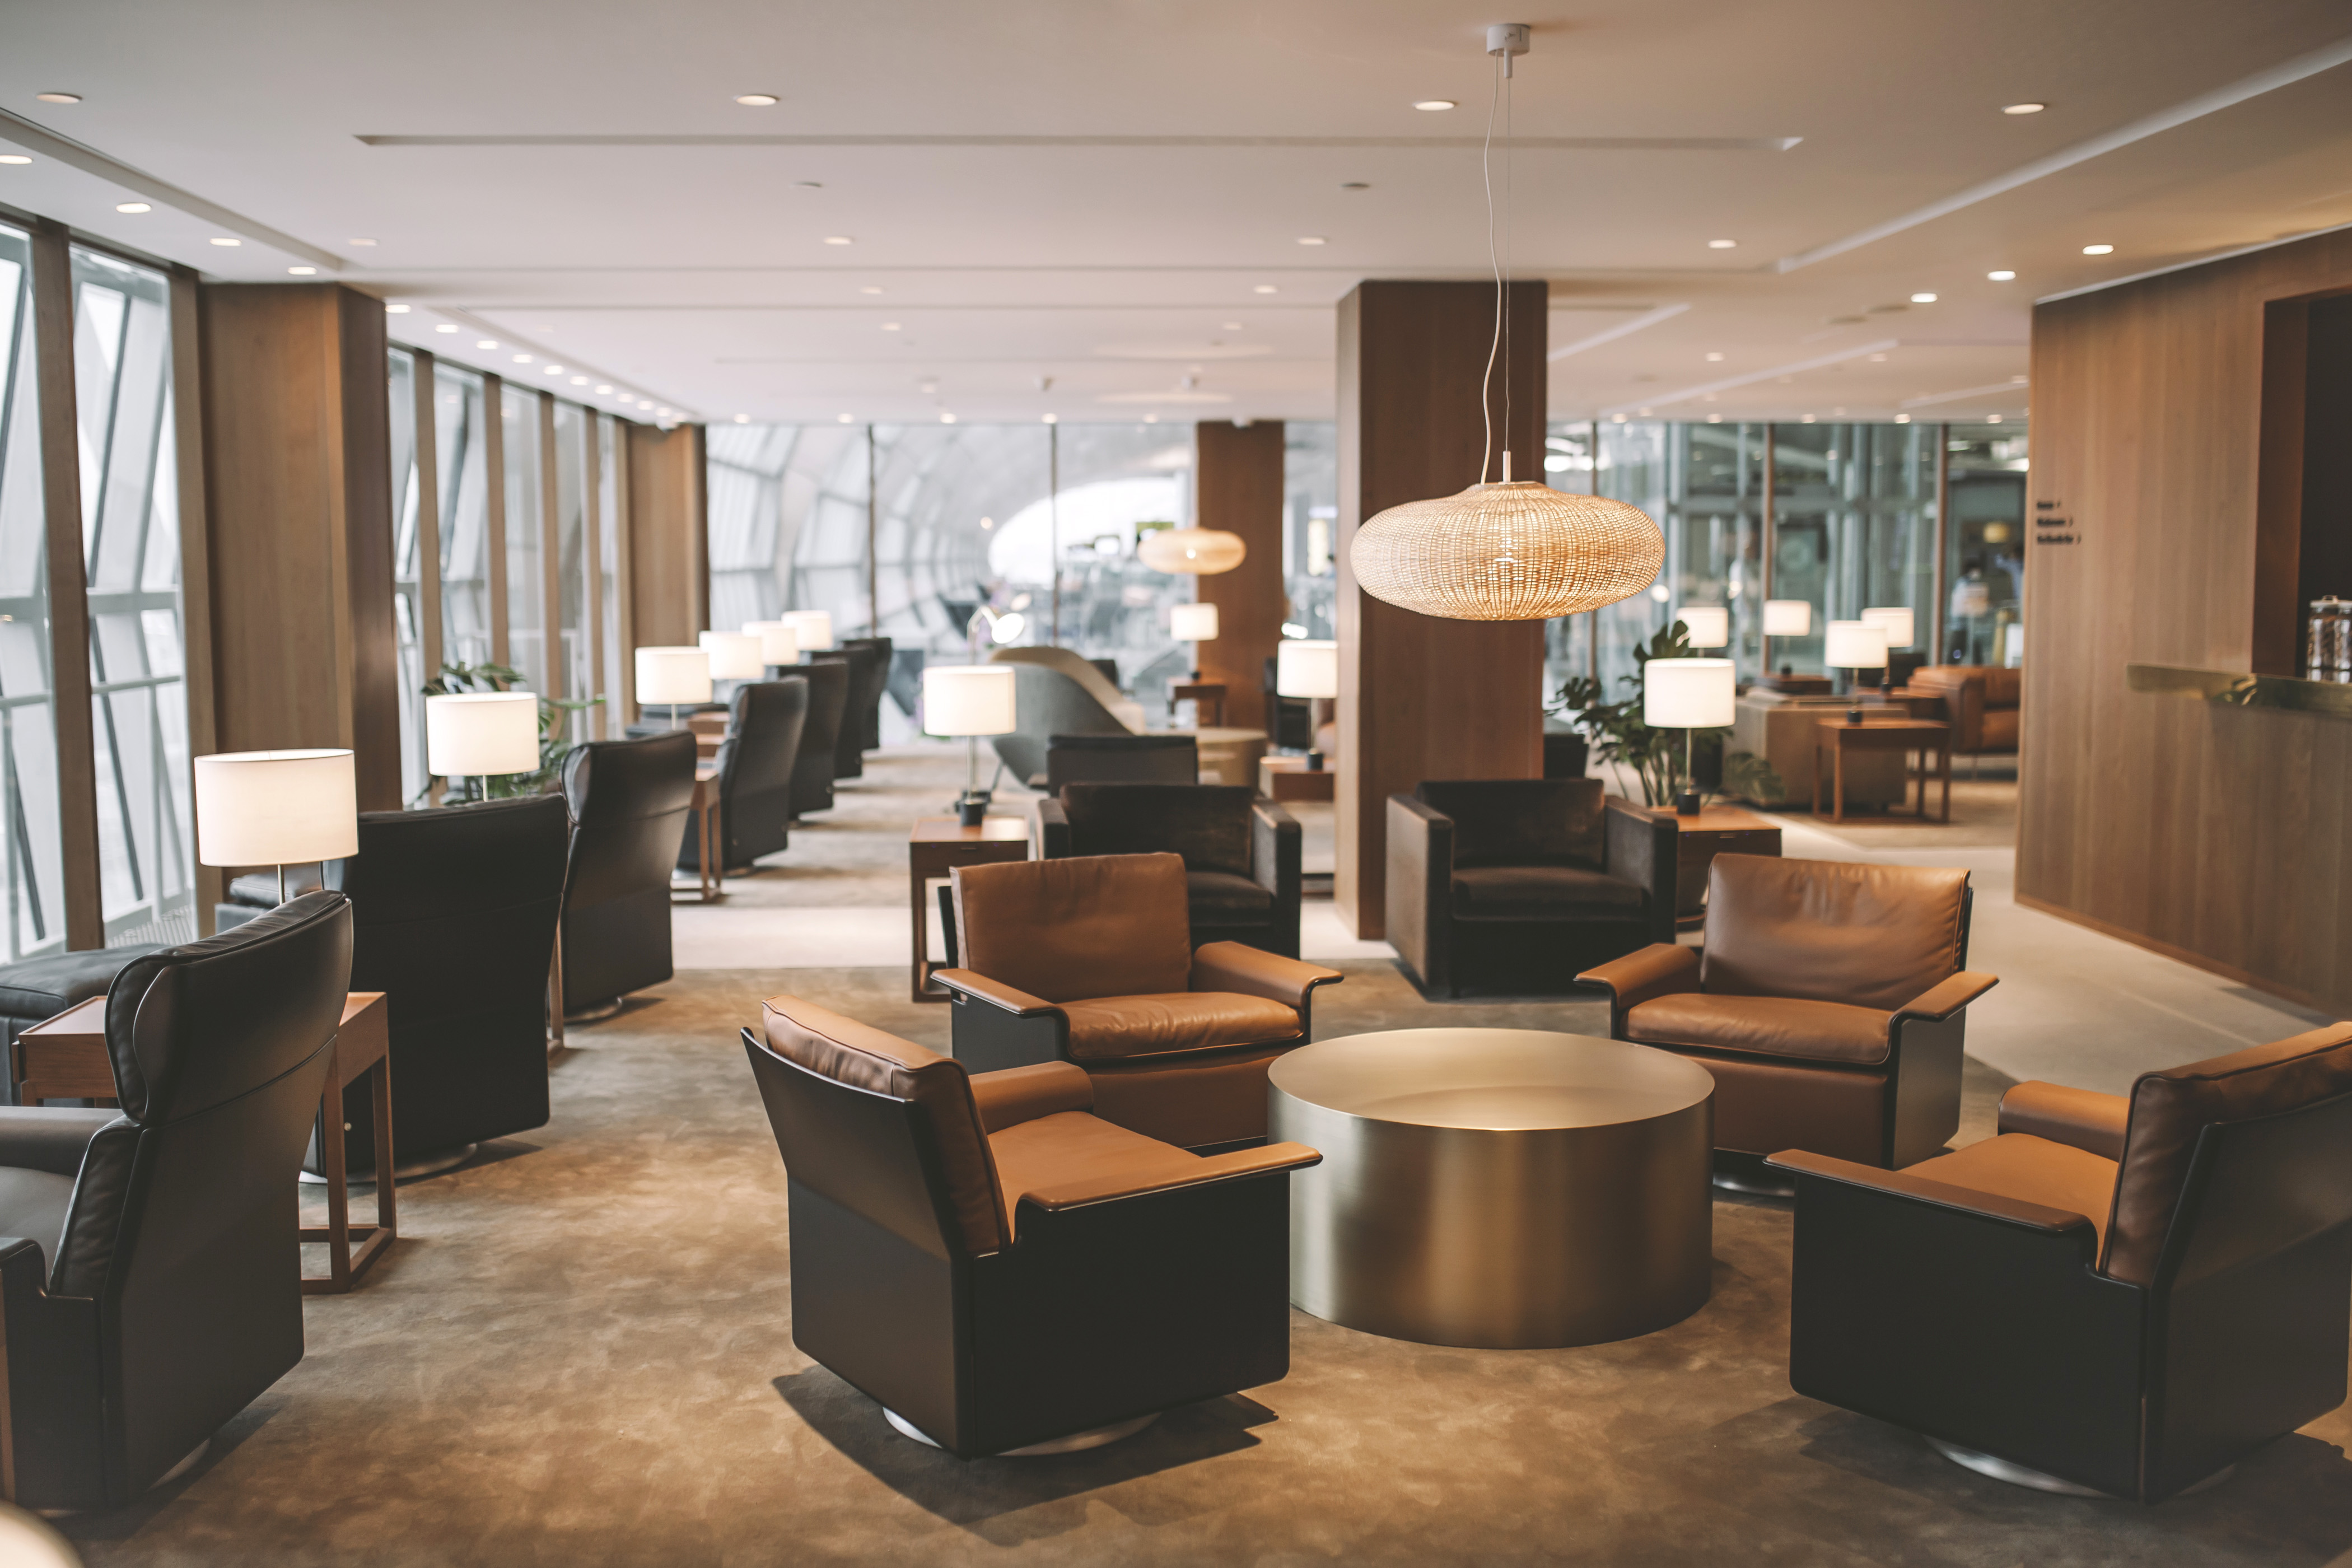 chair design bangkok kid pedicure open now cathay pacific s new lounge thedesignair